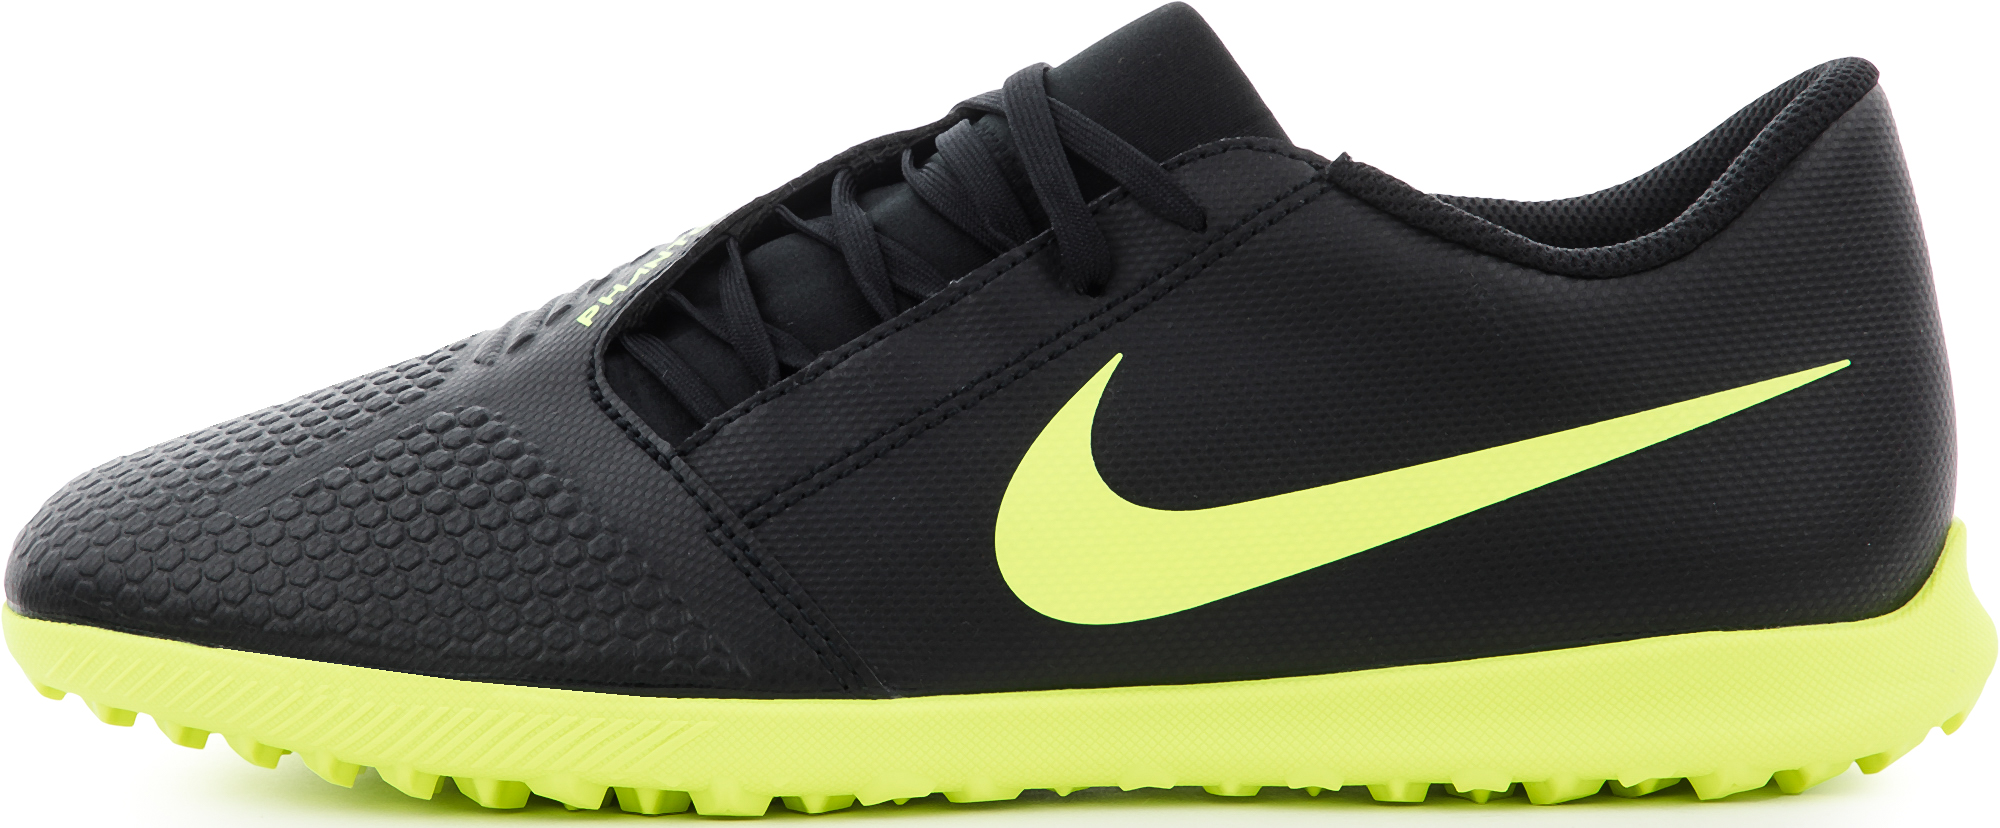 Nike Бутсы мужские Nike Phantom Venom Club Tf, размер 45 цена